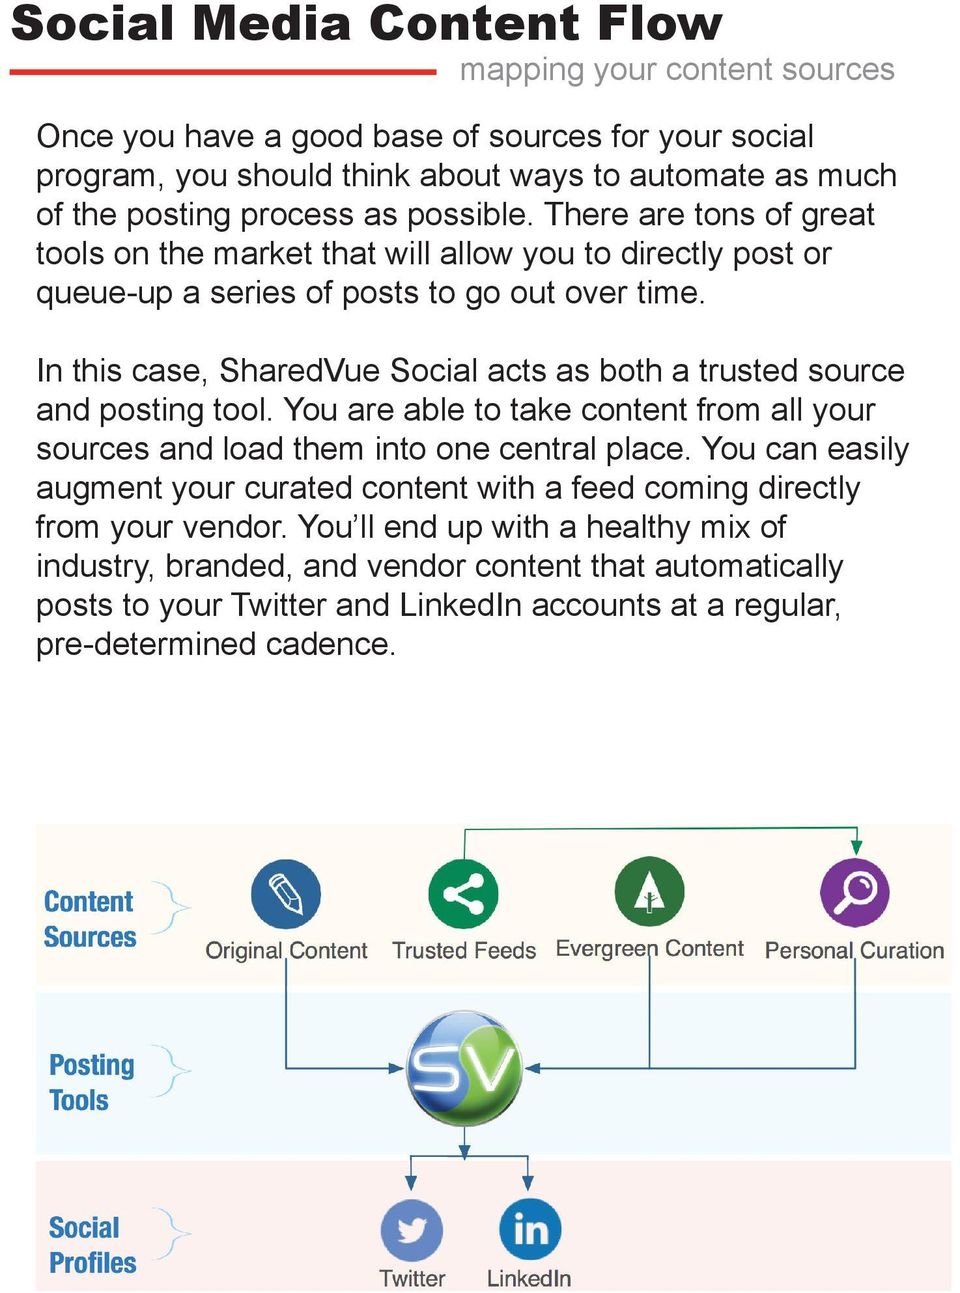 In this case, SharedVue Social acts as both a trusted source and posting tool. You are able to take content from all your sources and load them into one central place.